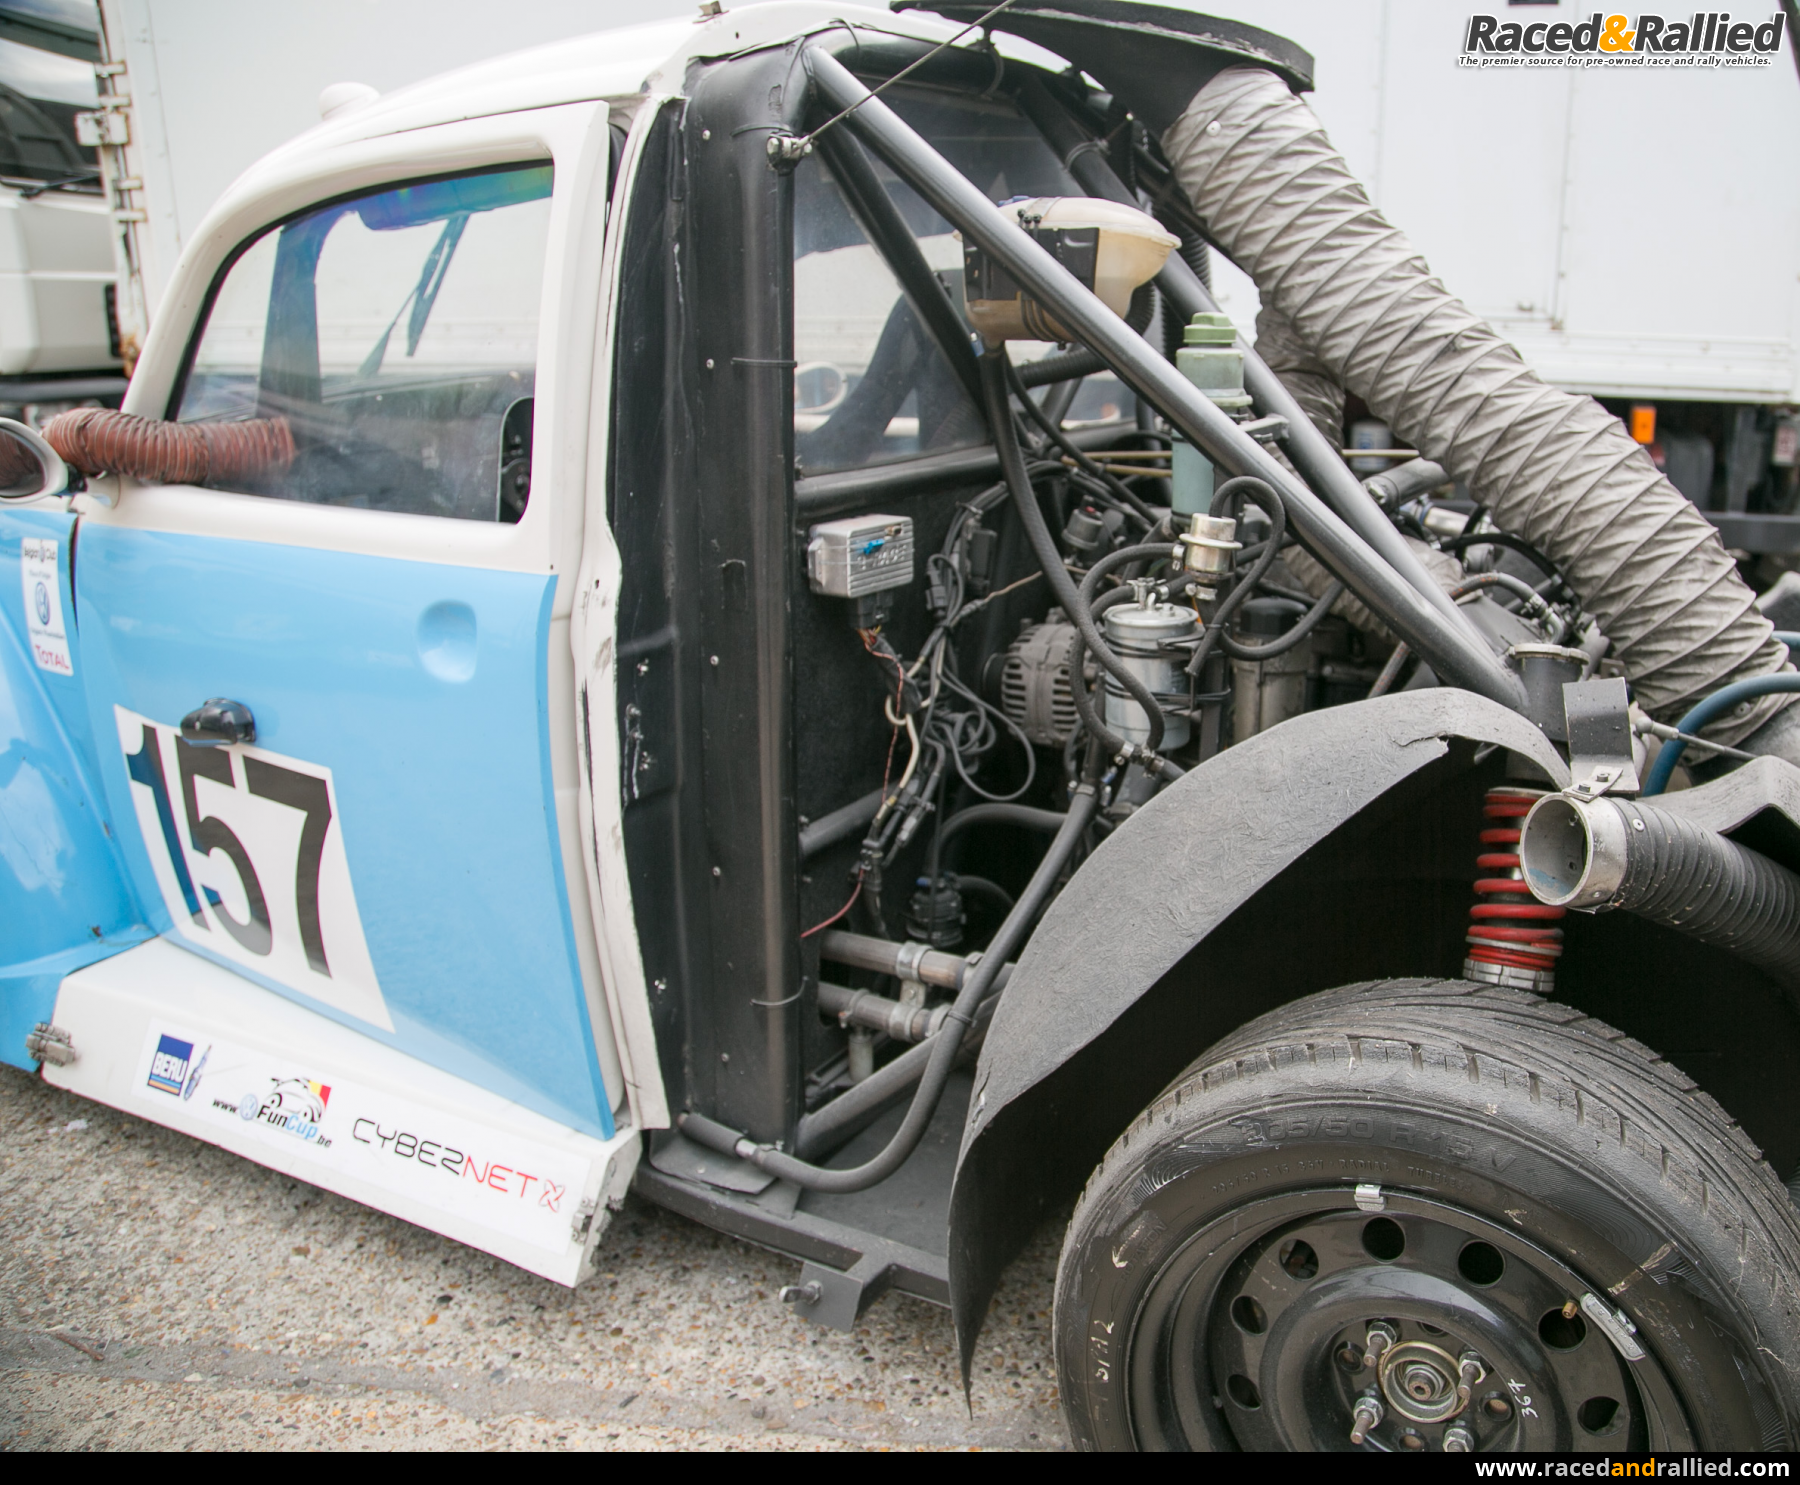 Vehicles For Sale: Race Cars For Sale At Raced & Rallied